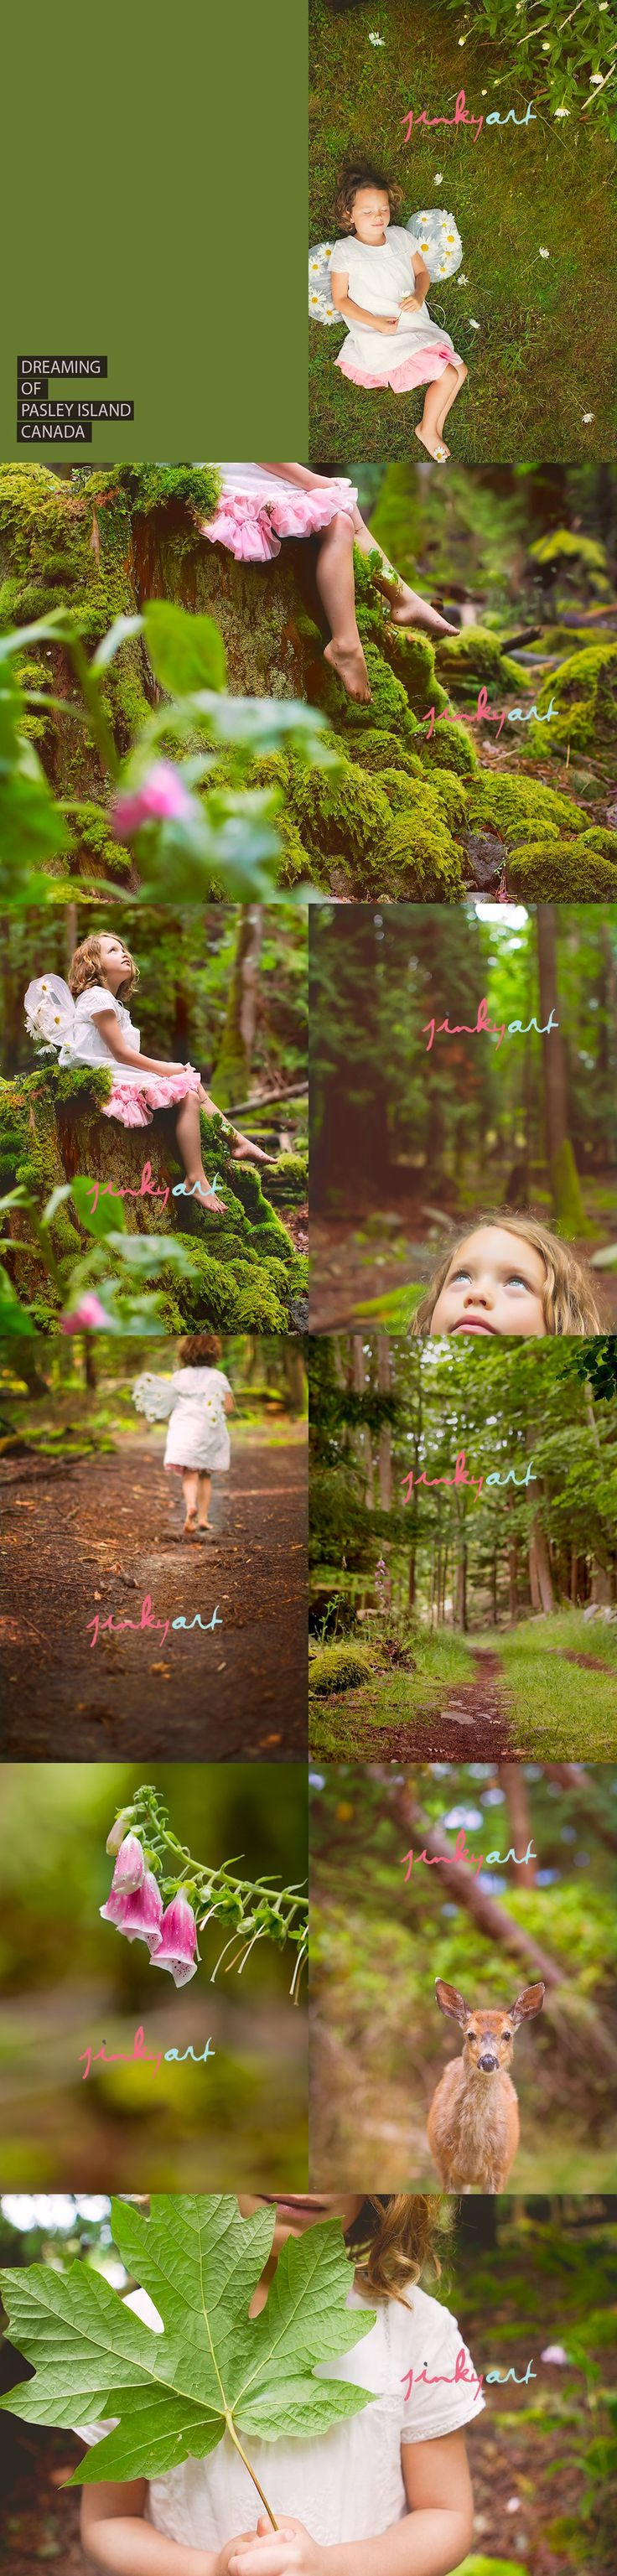 Great fairy shots